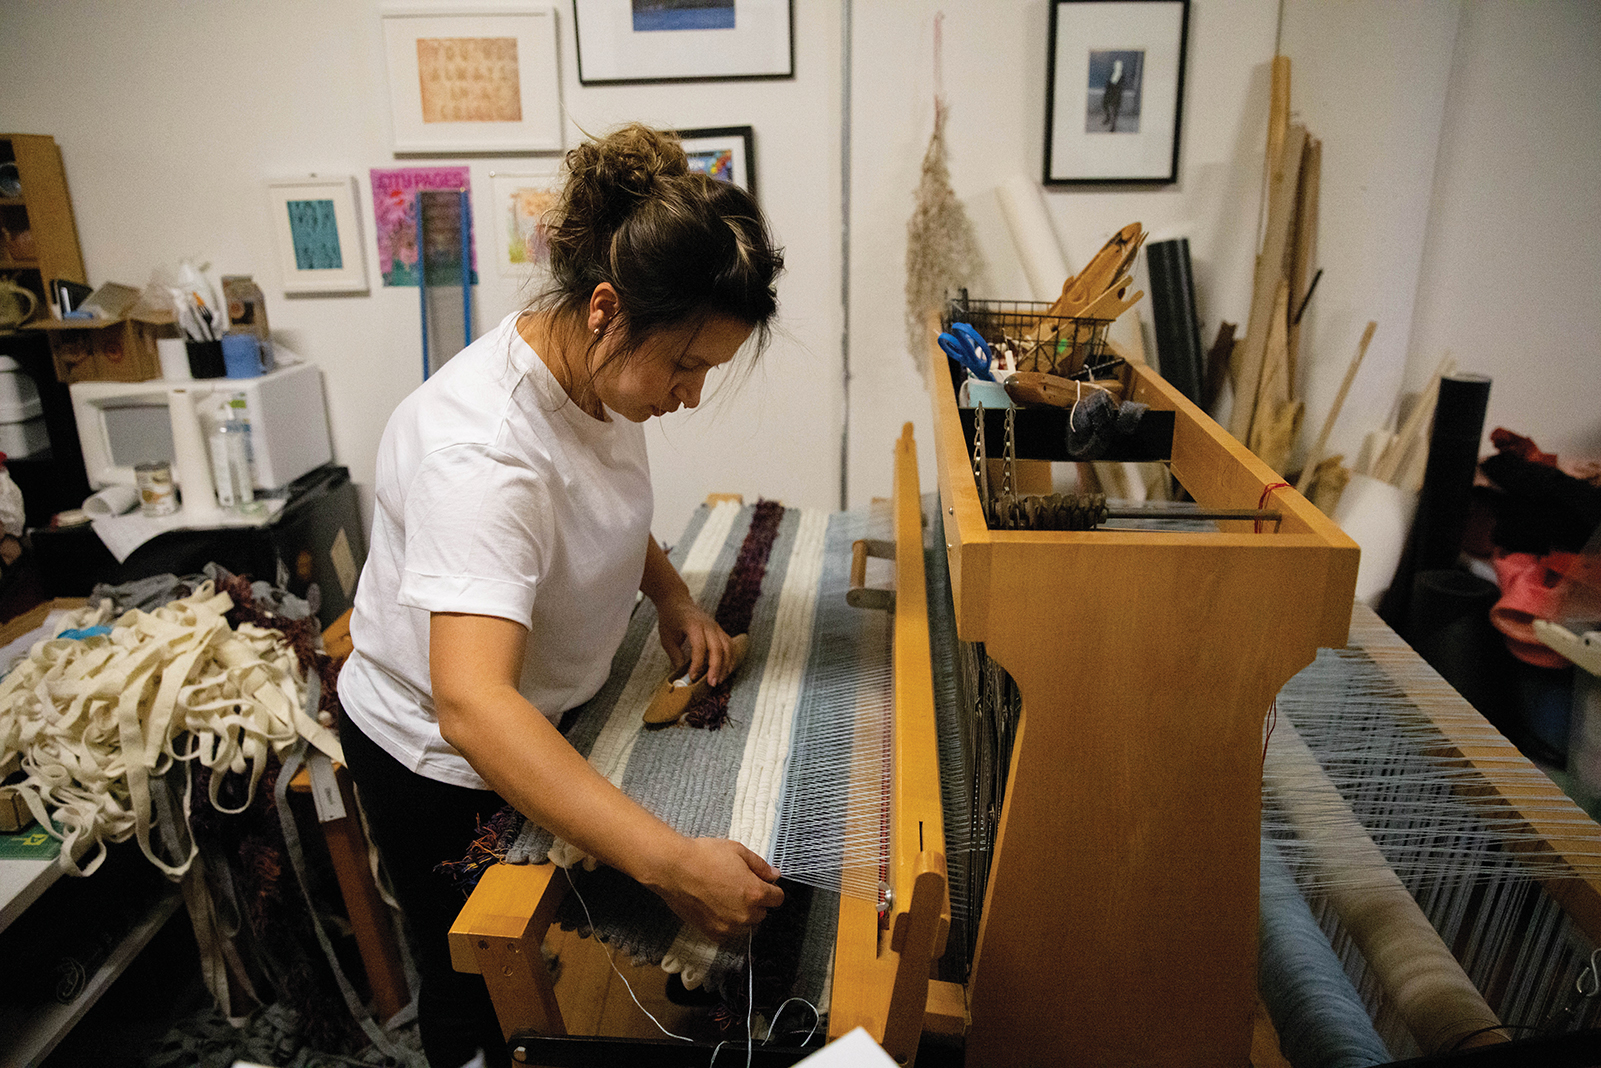 Maggie Thompson in her Minneapolis studio, where she has lately made face masks decorated with ribbons